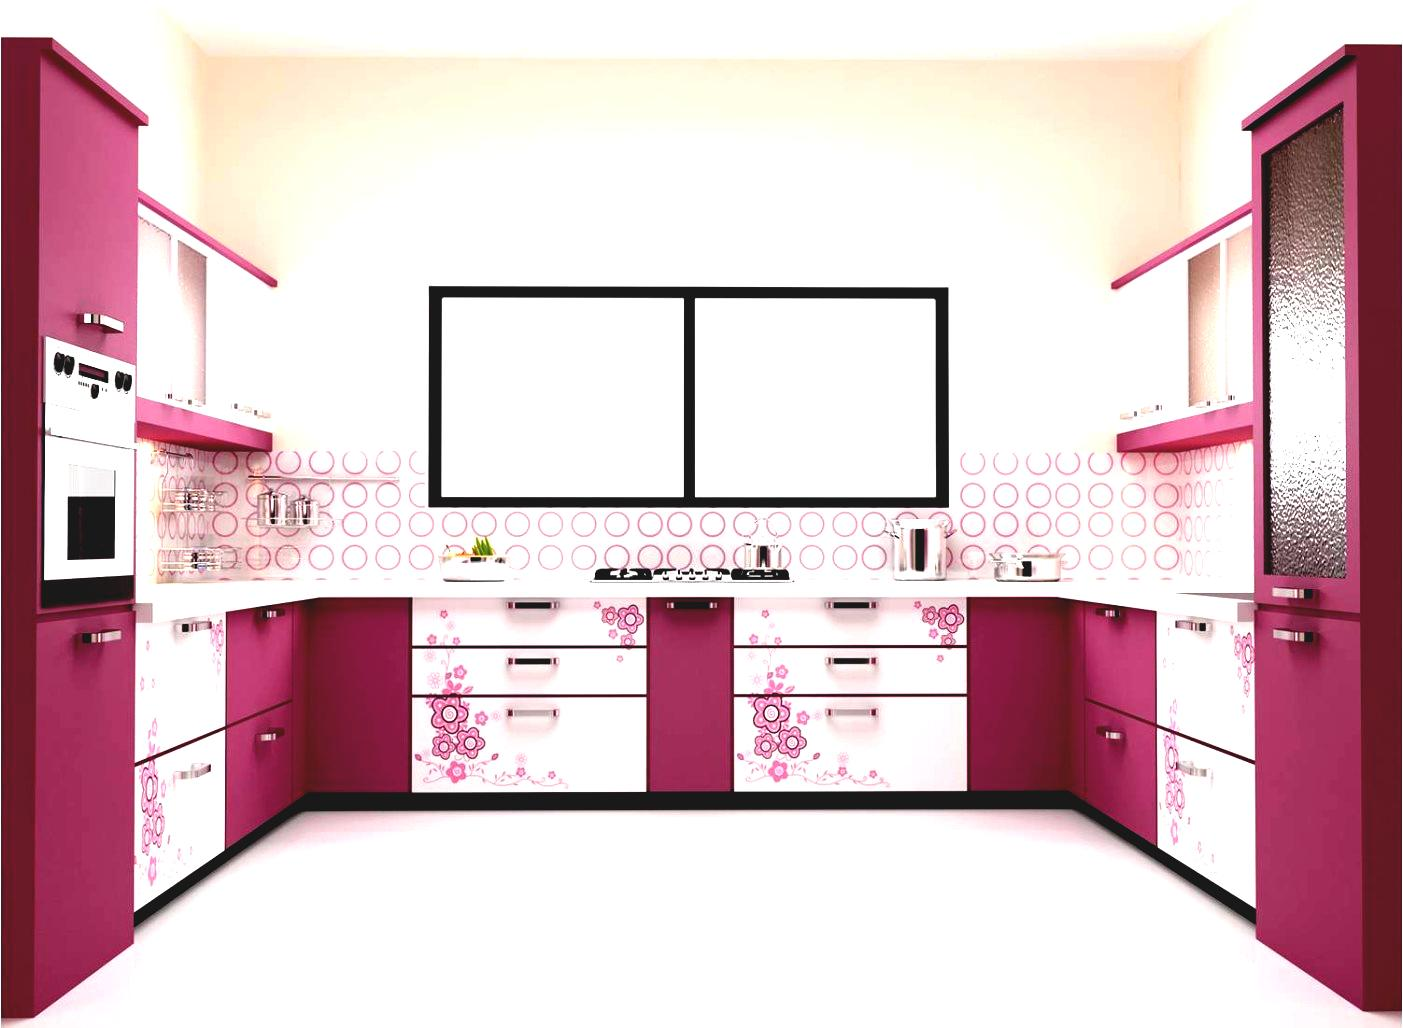 Latest Modular Kitchen Crowdbuild For: latest kitchen designs photos